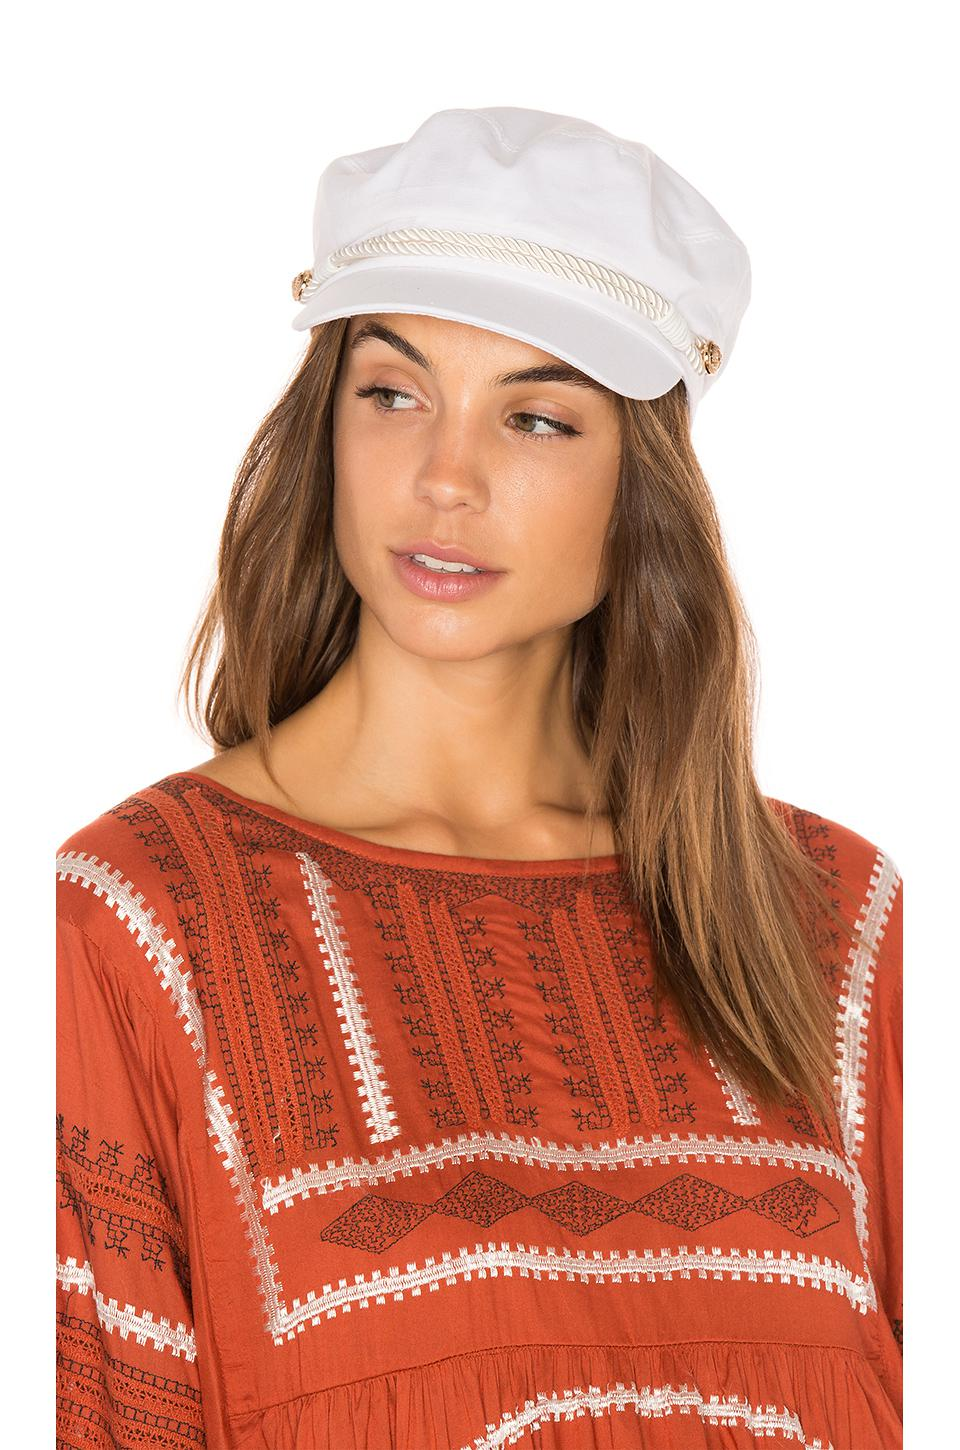 Lyst - Hat Attack Emmy Cap In White. in White 4b56a1996d4